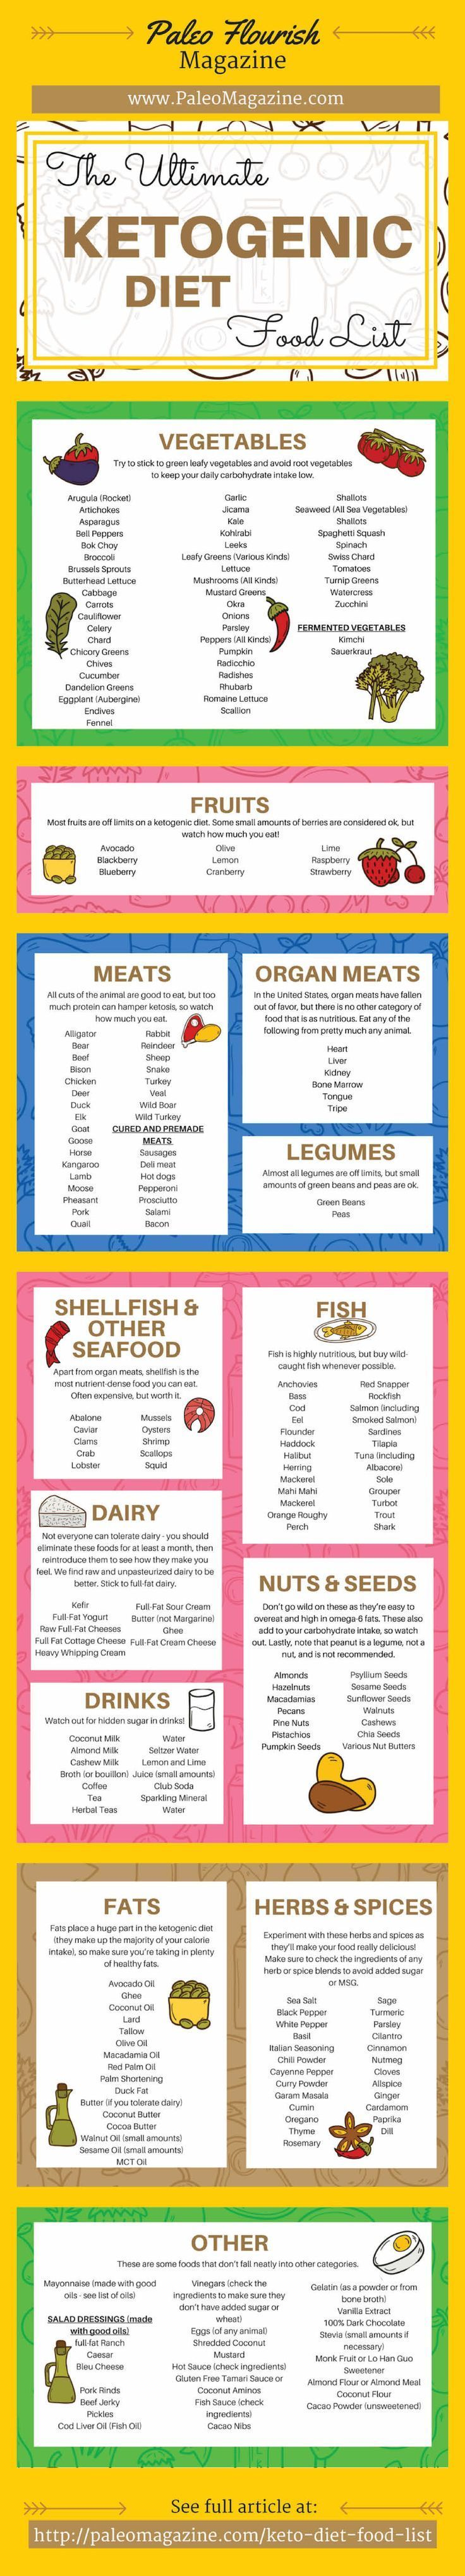 Check out this comprehensive ketogenic diet food list (including a PDF you can download) and find out what you should be eating on the ketogenic diet.